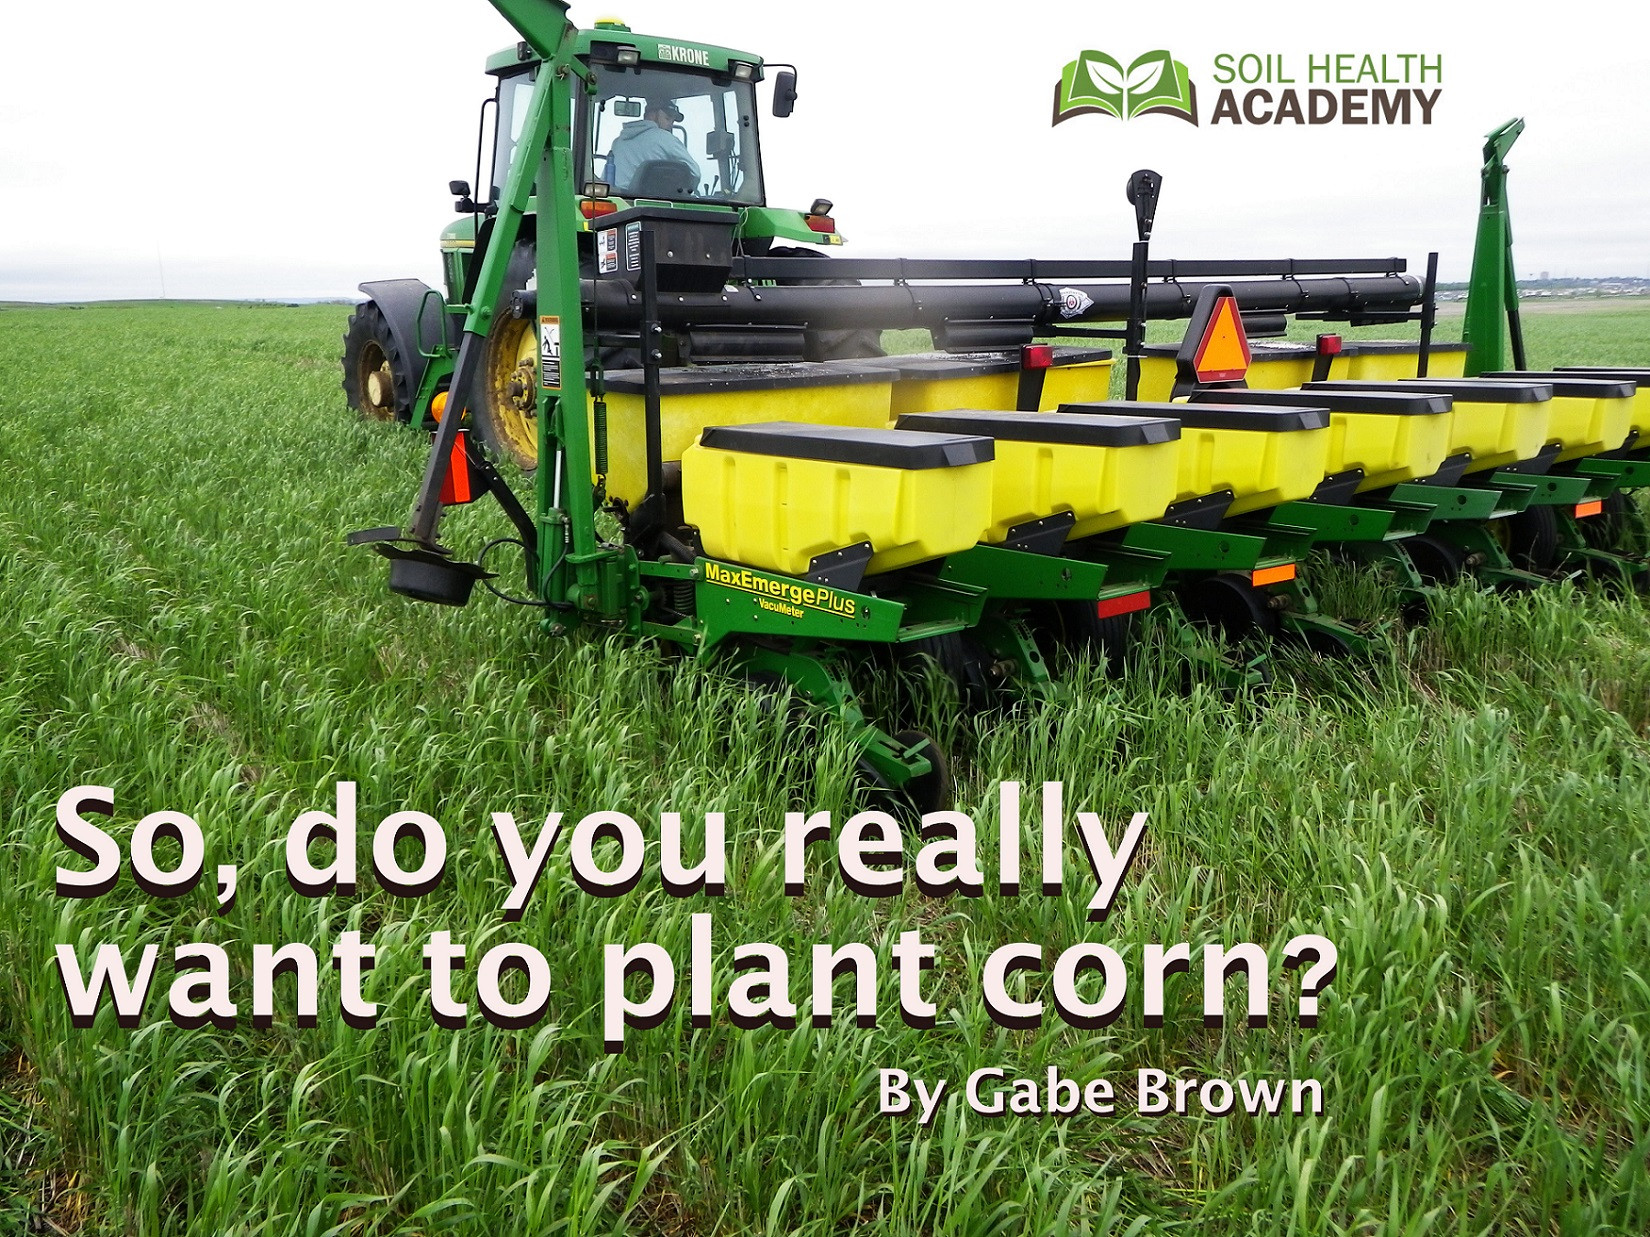 So, do you really want to plant corn?